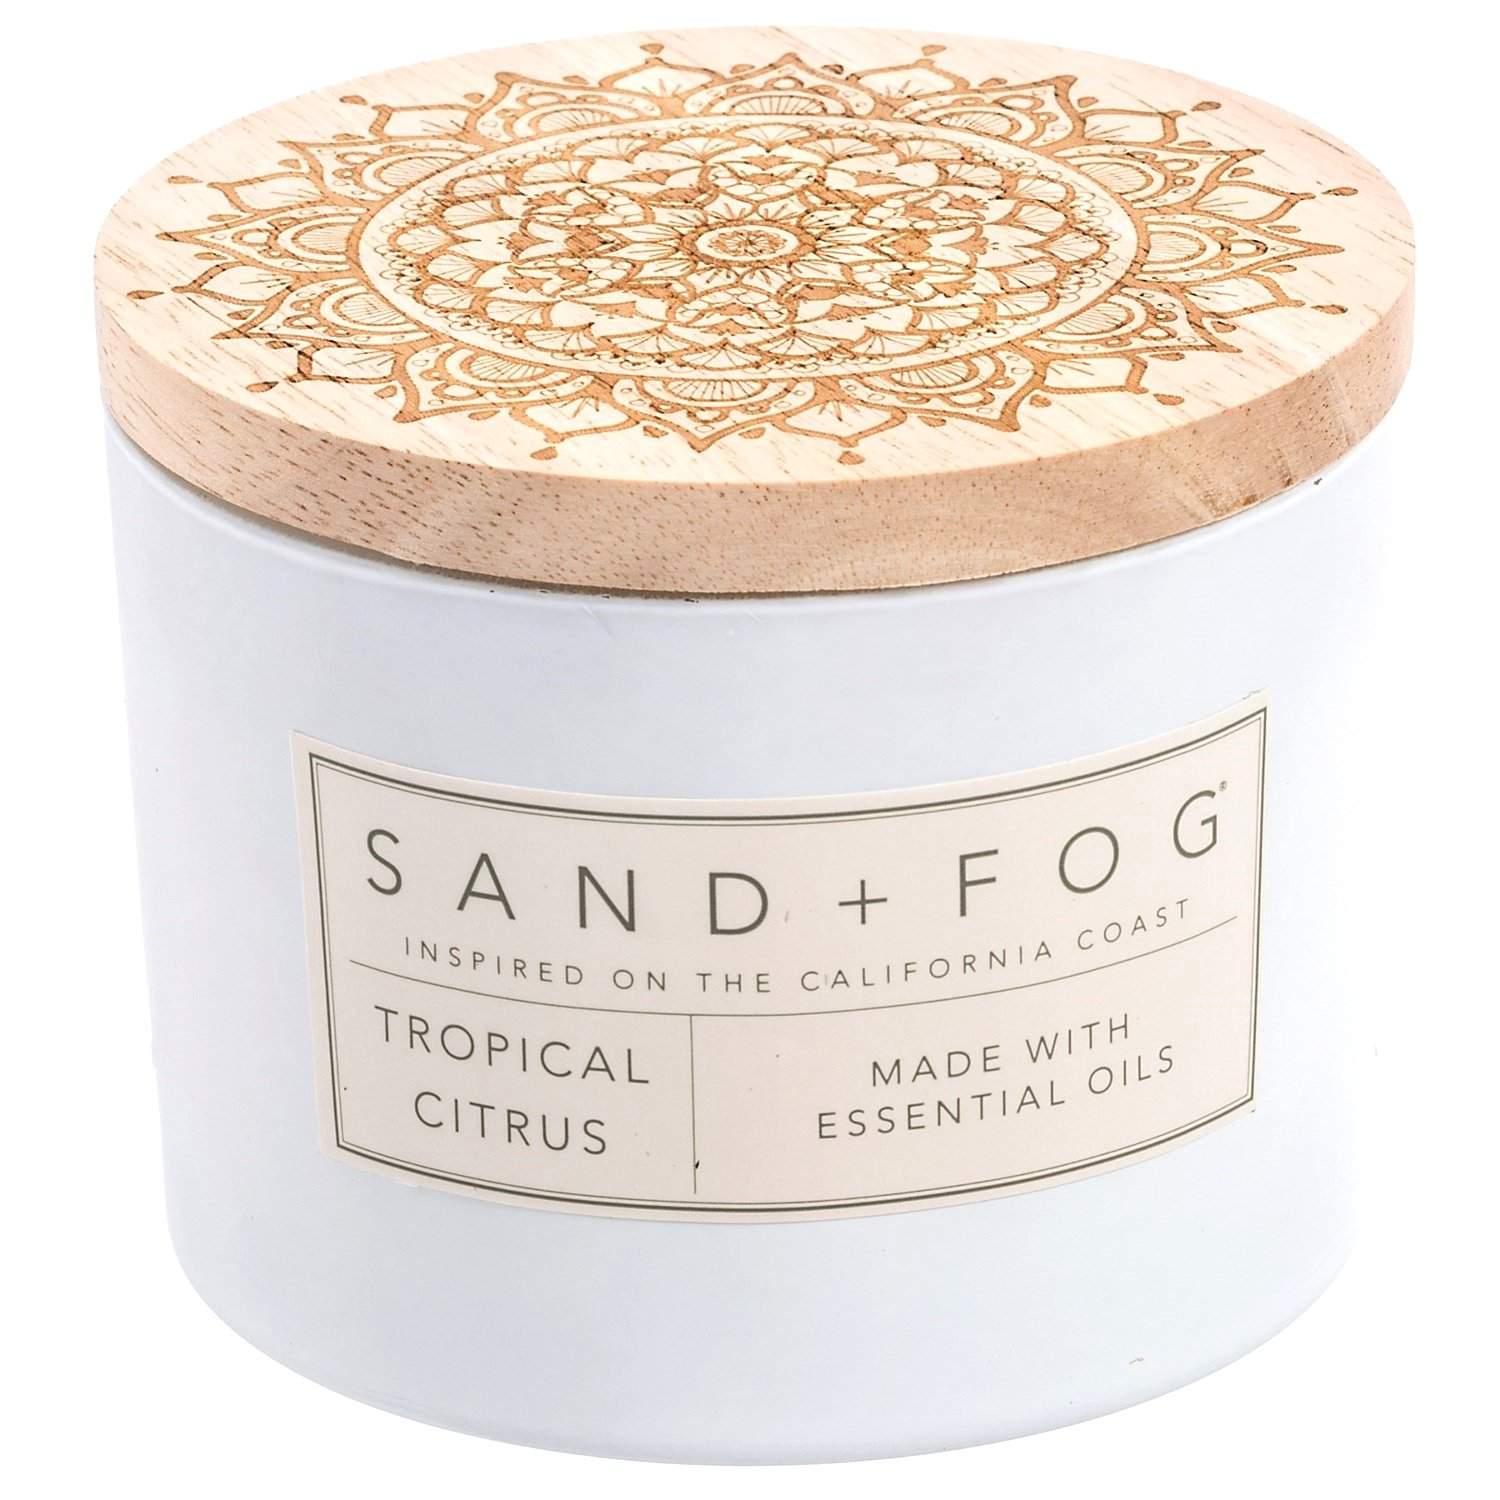 null - Sand + Fog Coastal Tropical Citrus Matte Candle - 2-Wick, 12 oz., Wood Lid